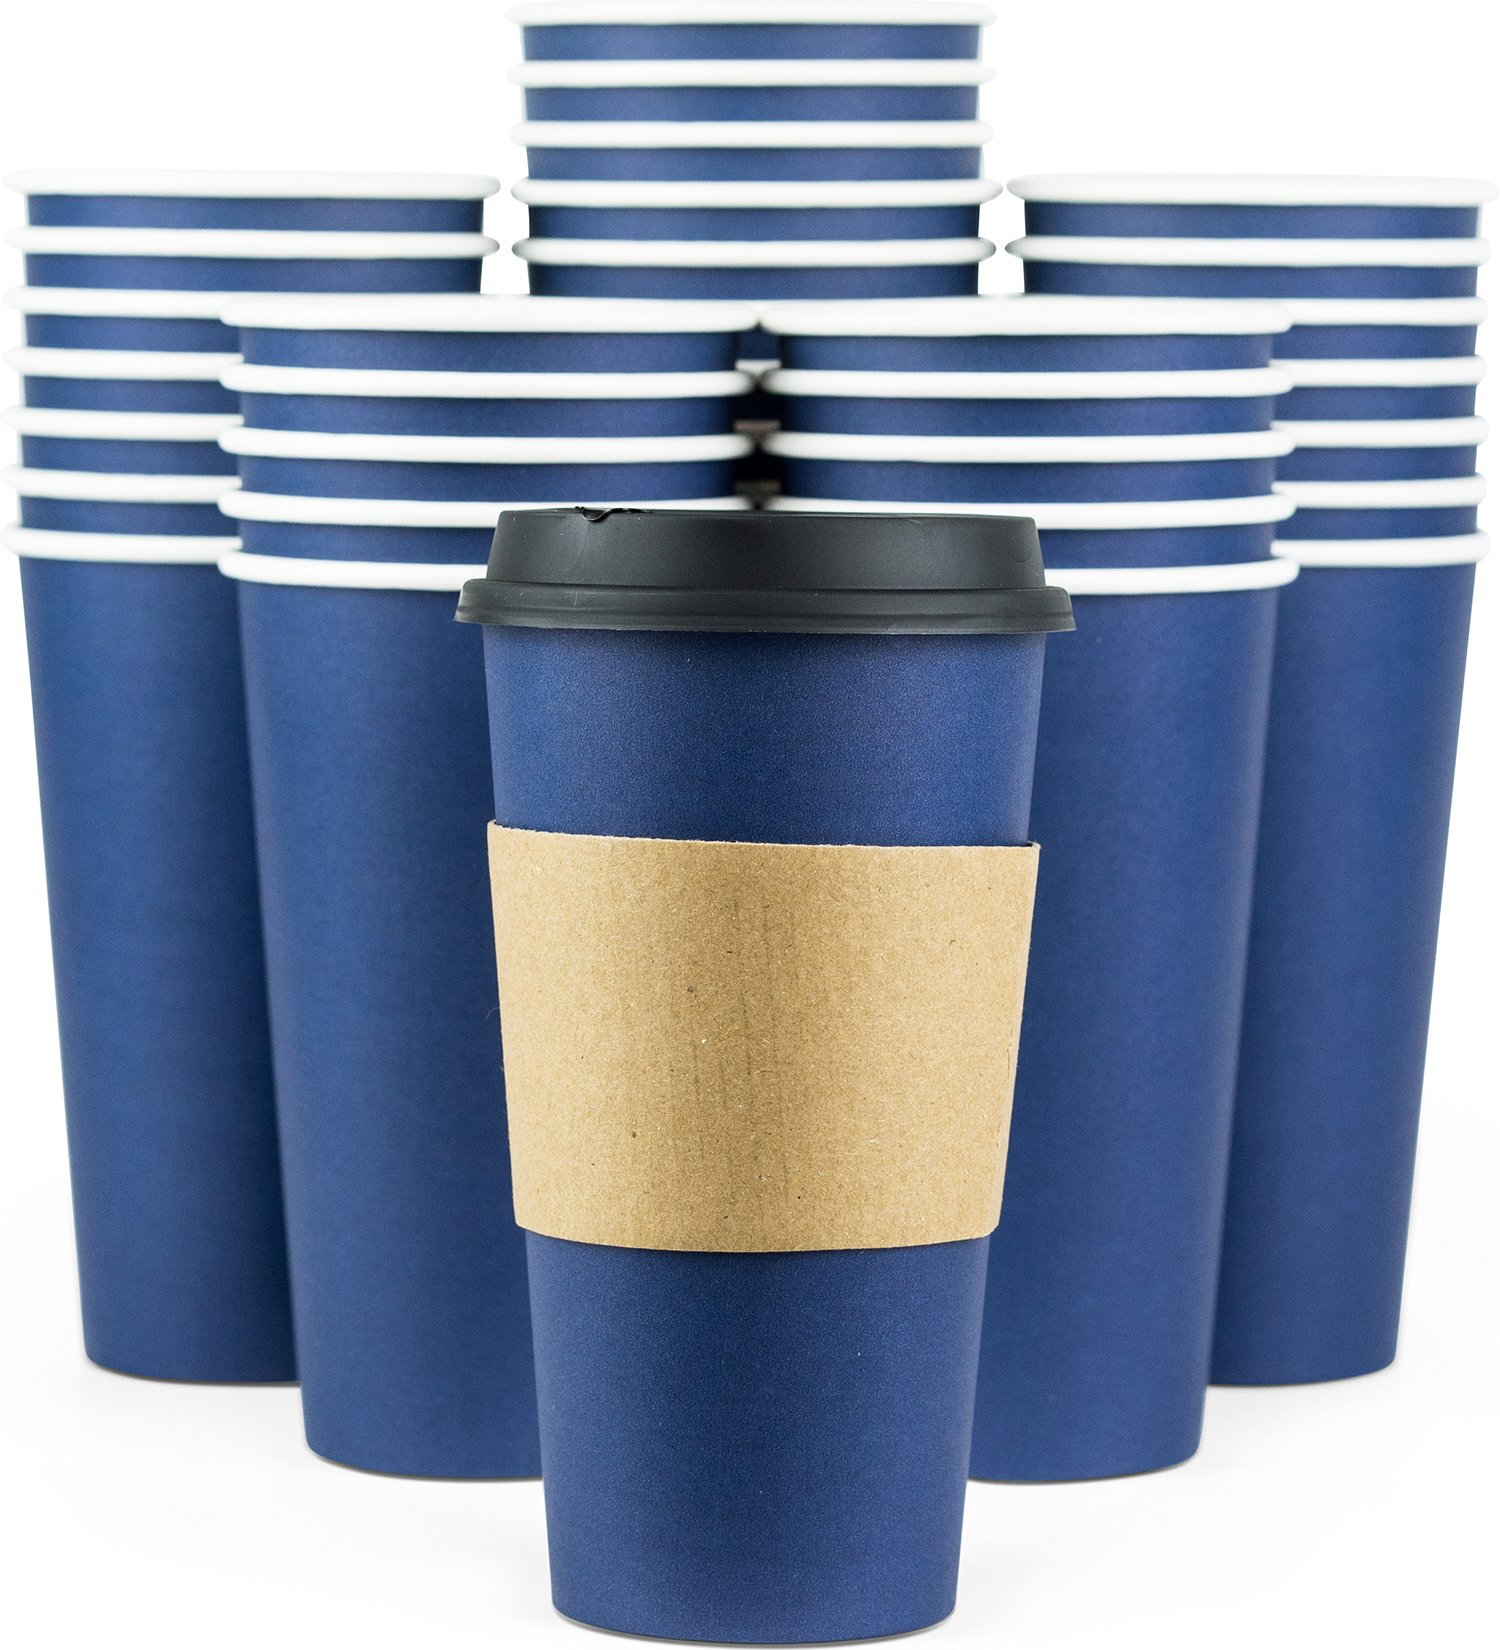 Glowcoast Disposable Coffee Cups With Lids - 20 oz To Go Coffee Cup (90 Pack). Large Travel Cups Hold Shape With Hot and Cold Drinks, No Leaks! Paper Cups with Insulated Sleeves Protect Fingers! by Glowcoast